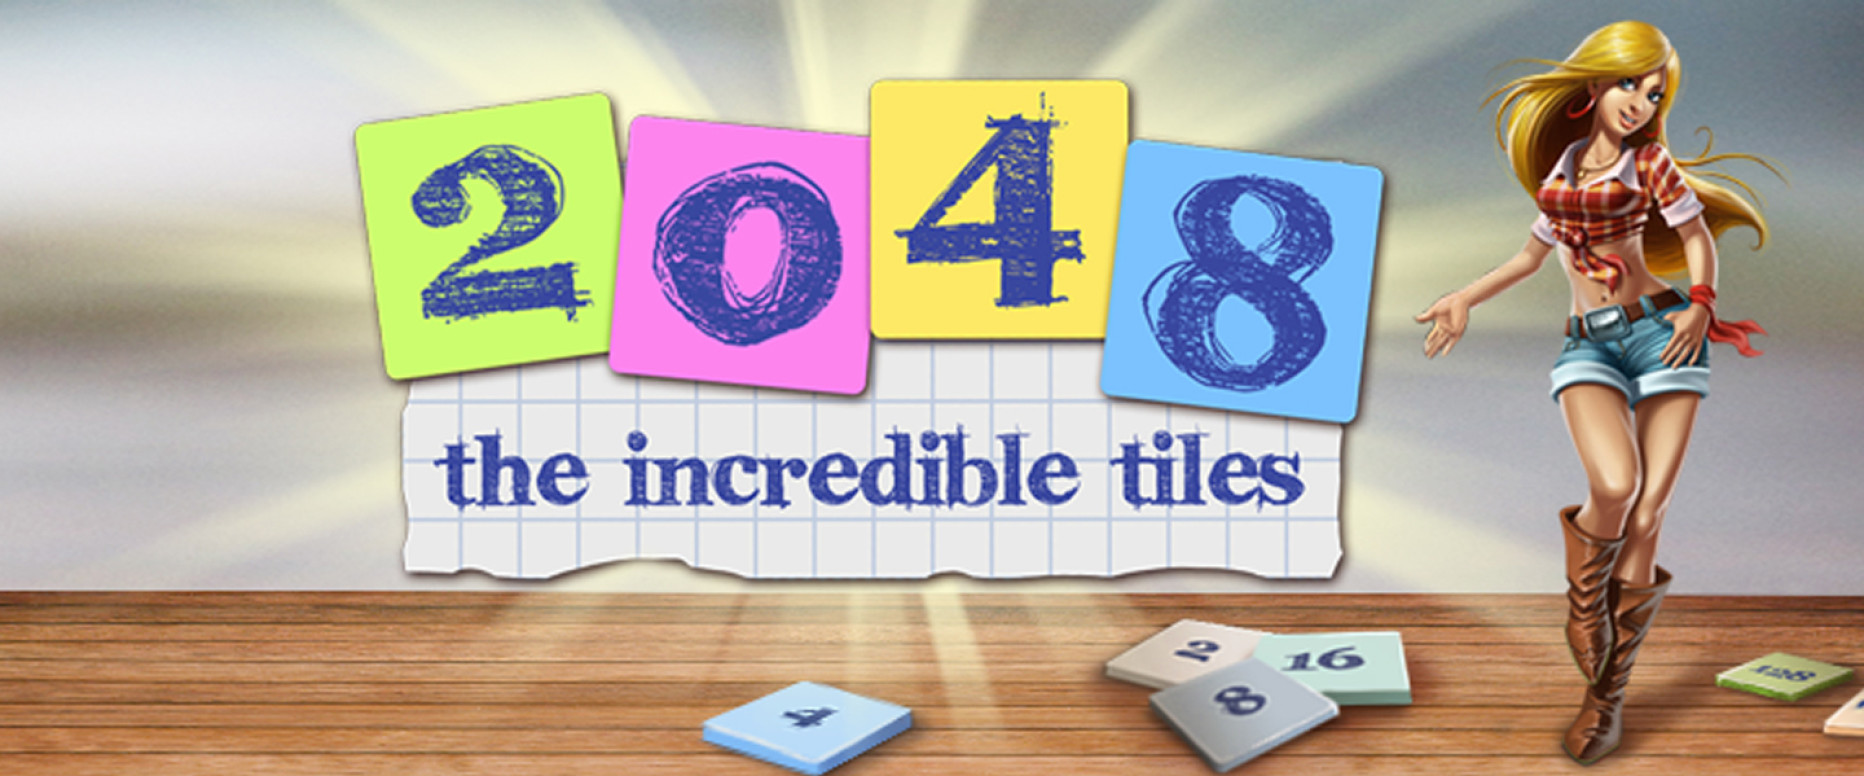 Playing with the Power of 2 – The Incredible Tiles 2048